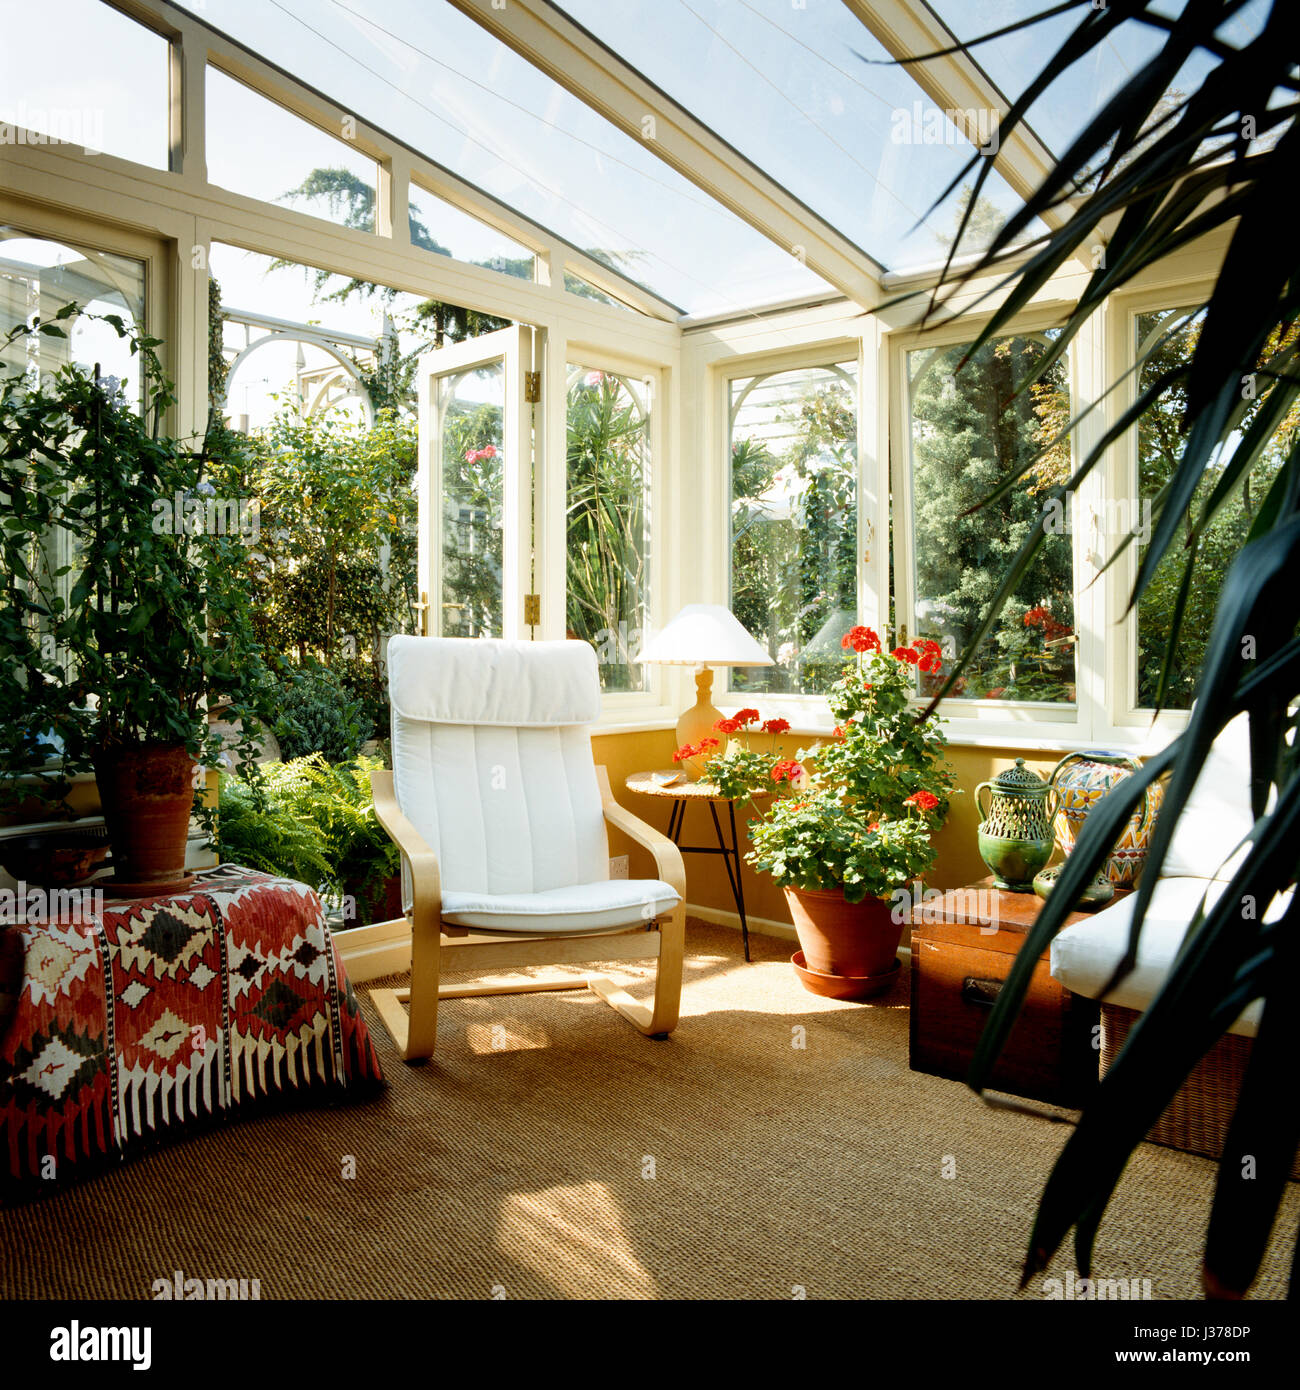 Conservatory with plants. - Stock Image